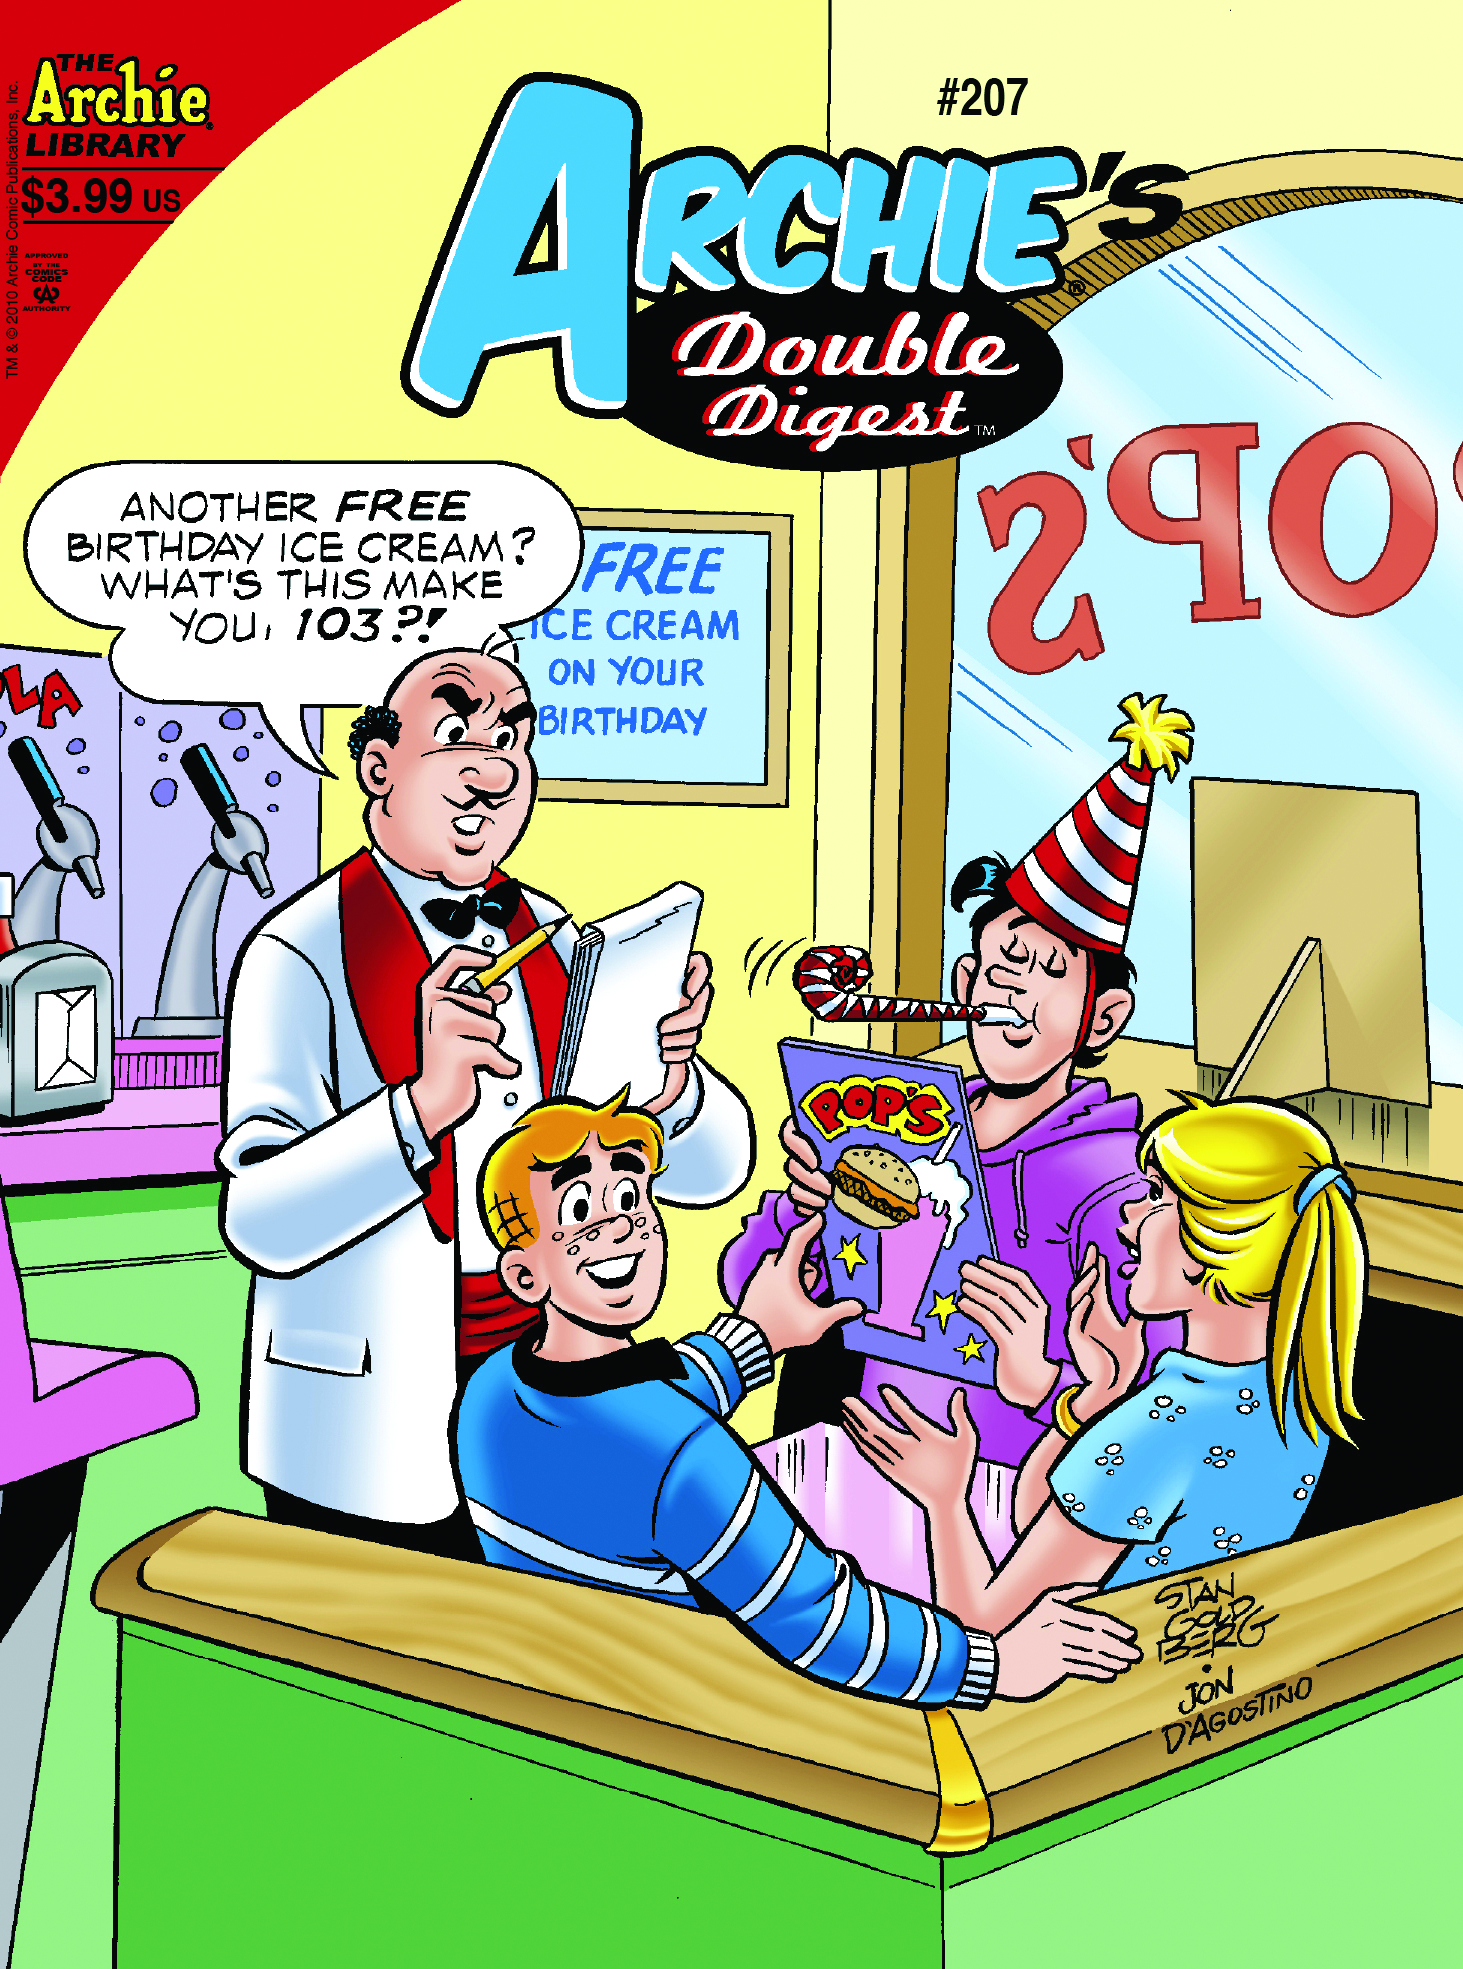 ARCHIE DOUBLE DIGEST #207